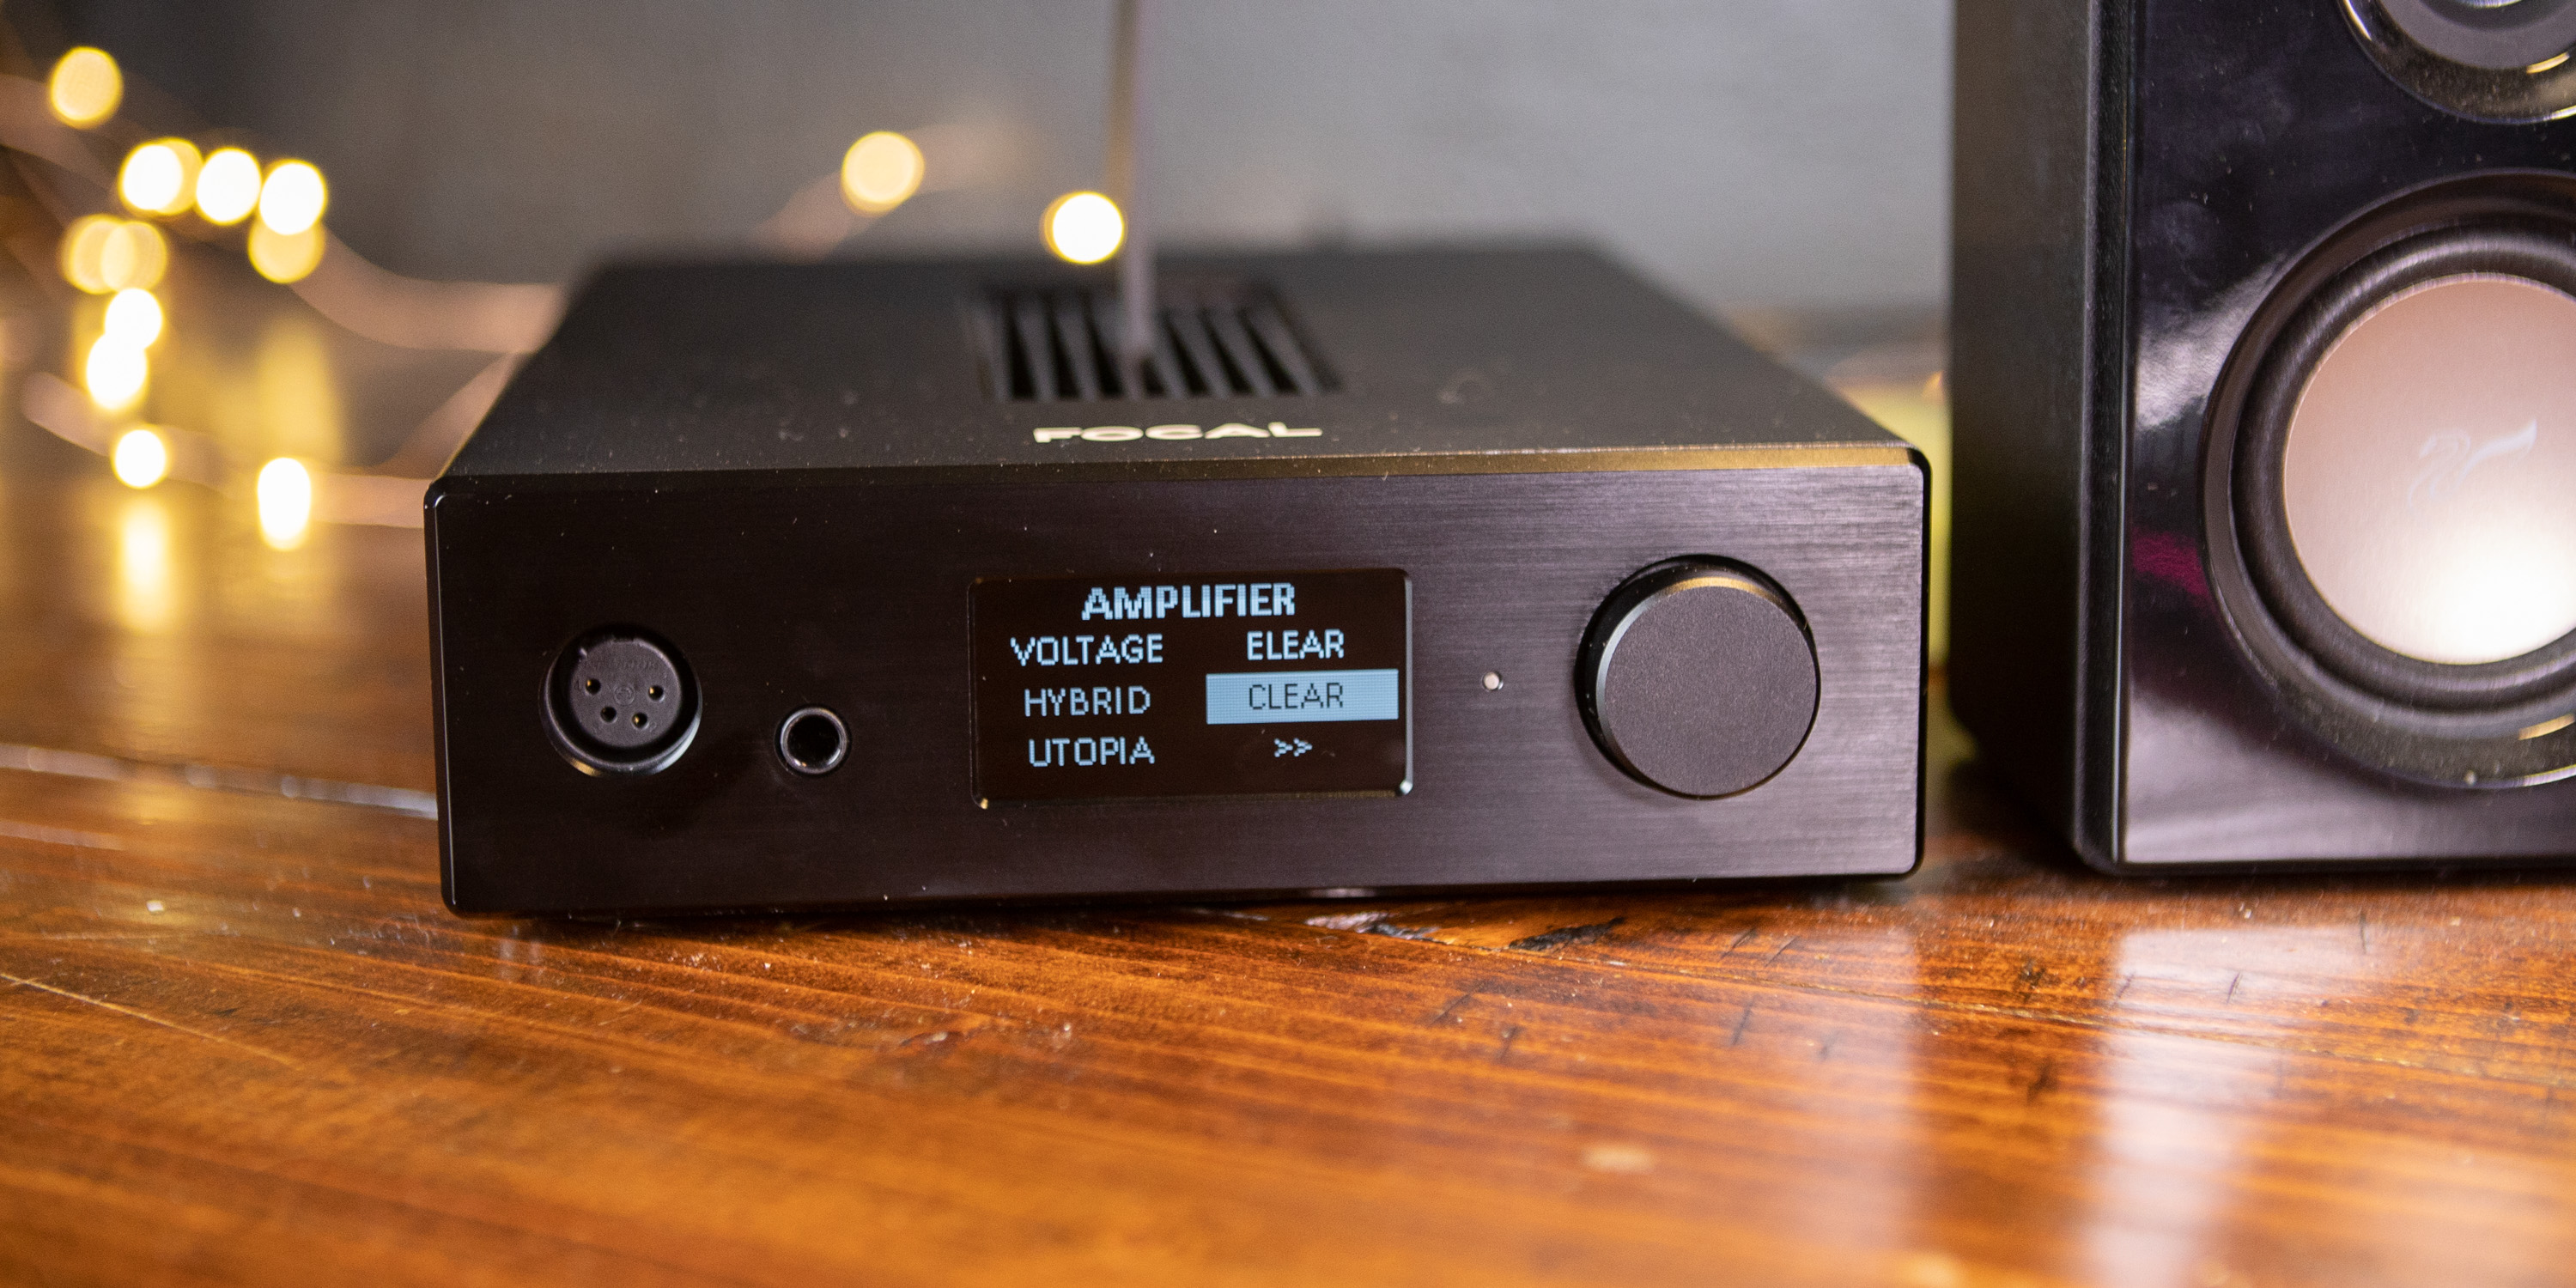 Navigating the menu of the Focal Arche headphone amp/DAC